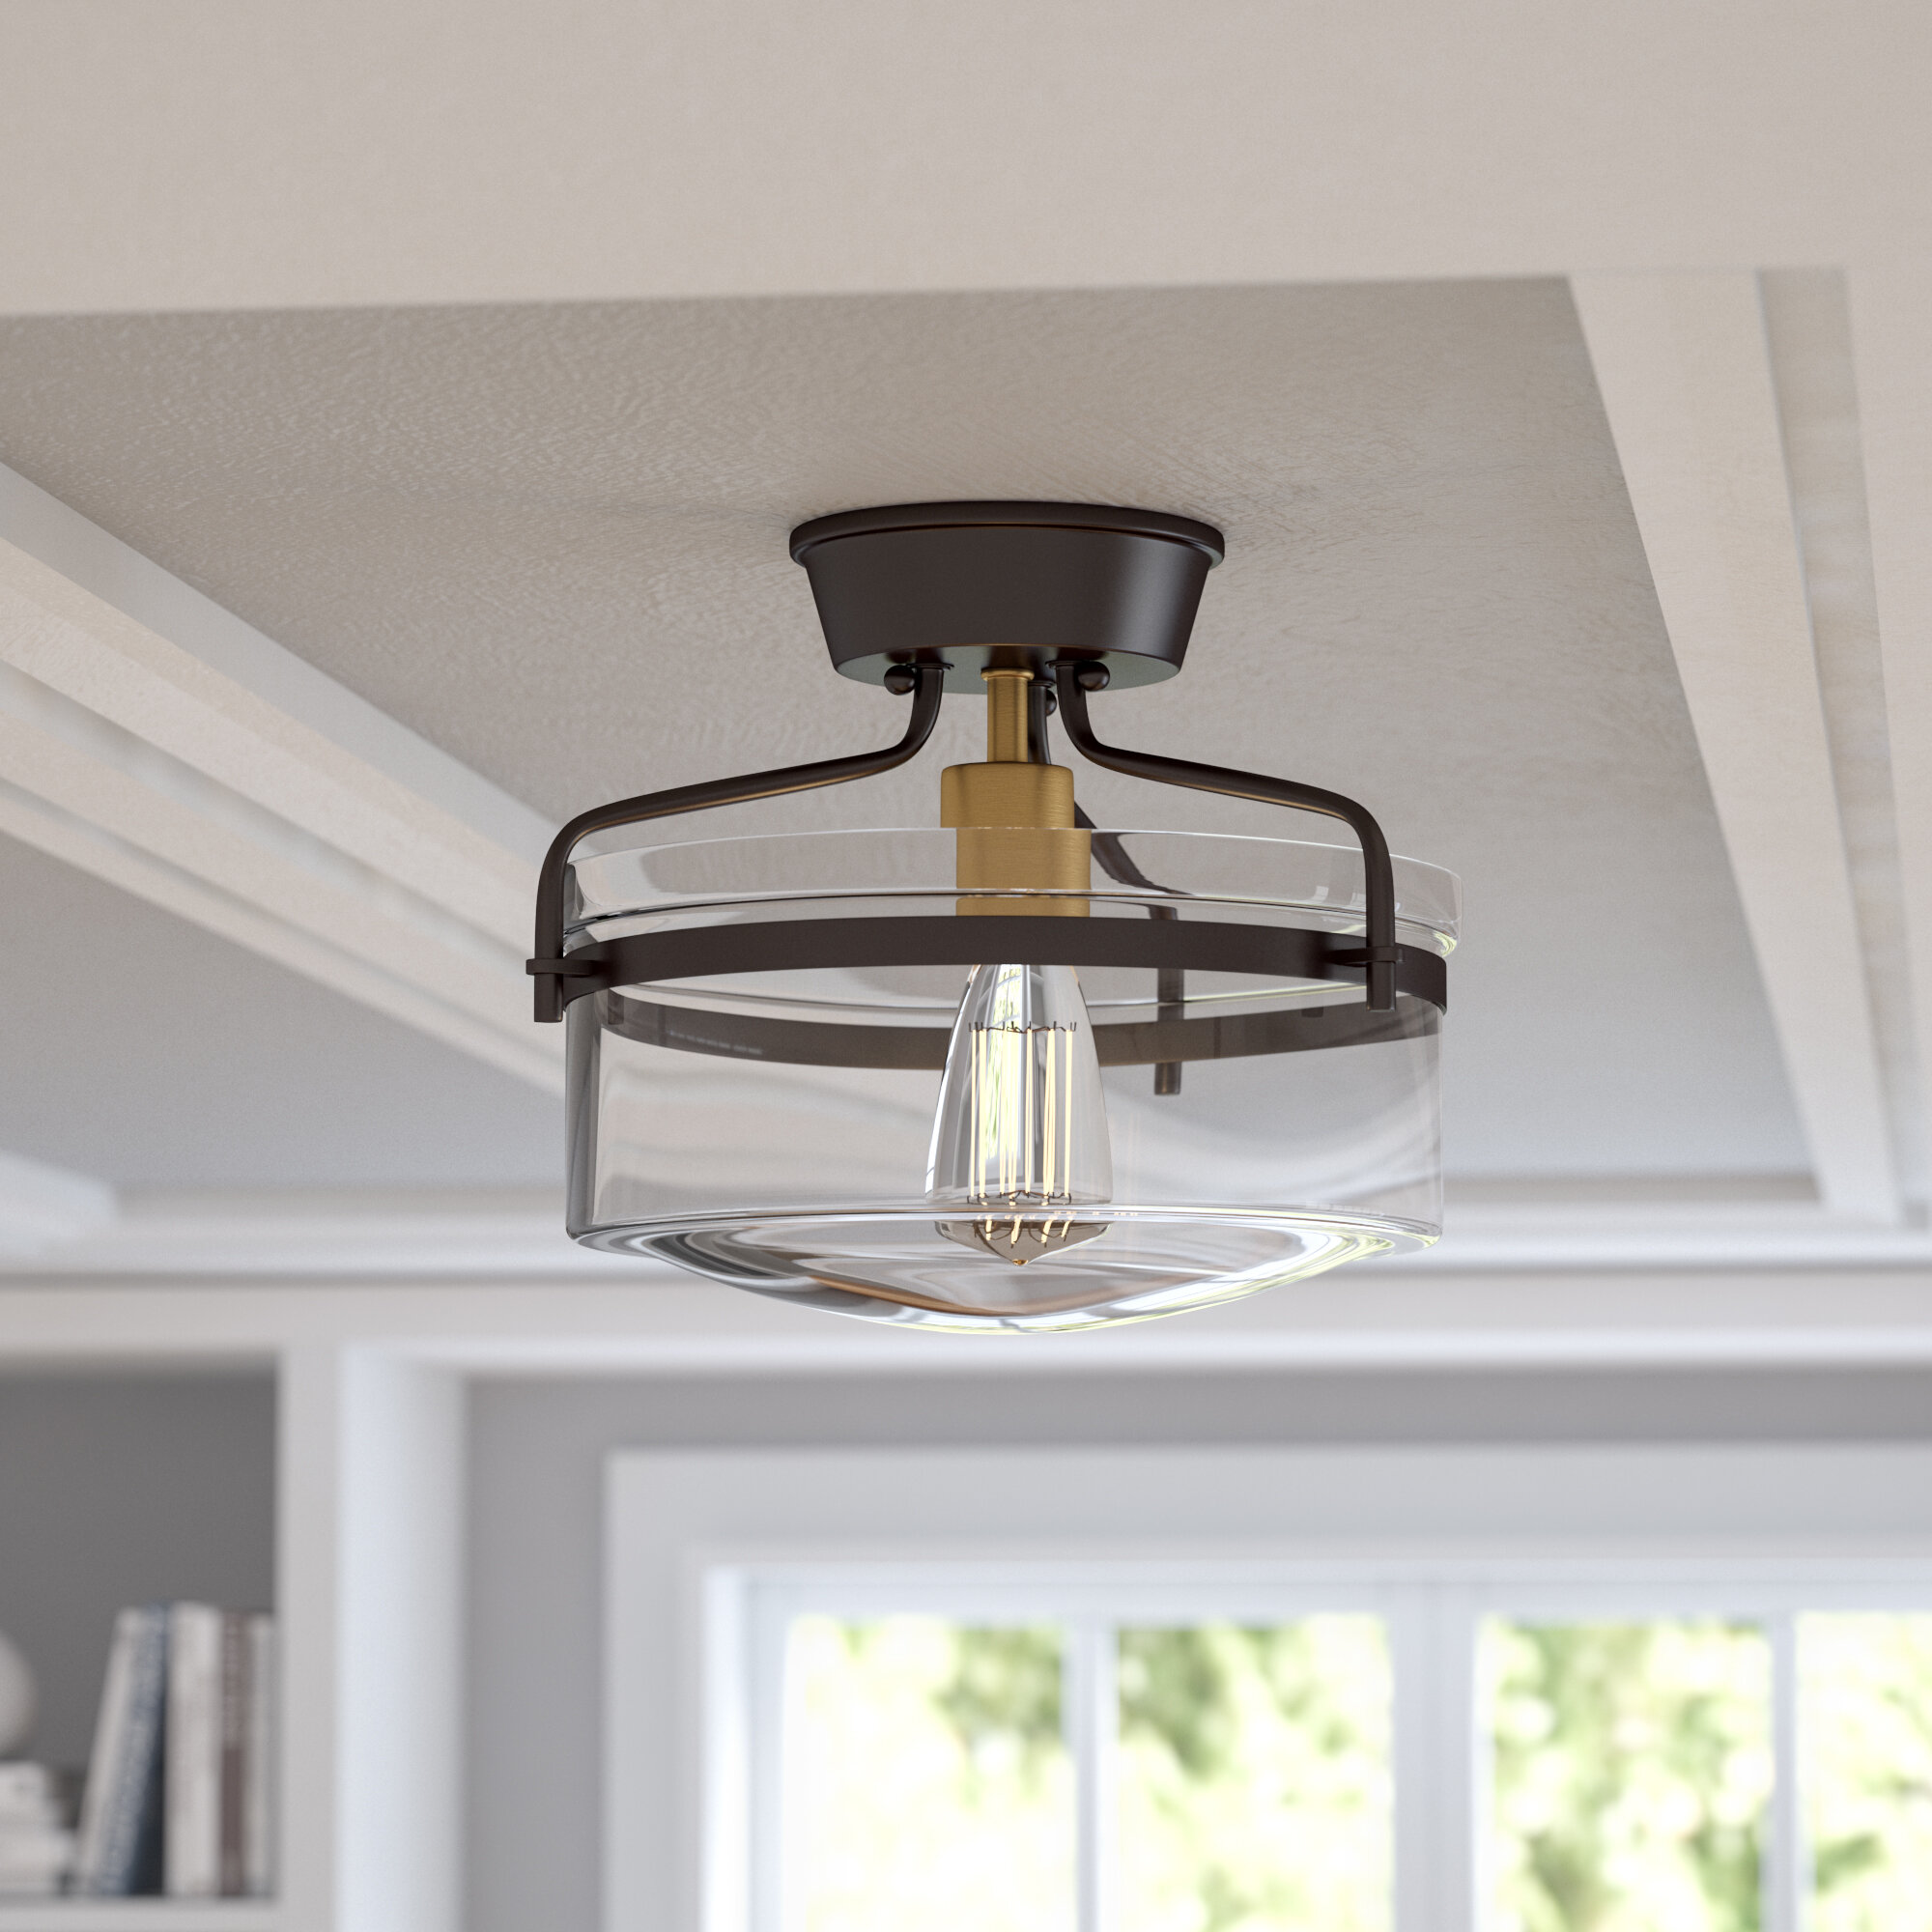 in lighting recessed ceilings at and soft white p mounted sld led light halo fixture mount integrated cri trims ceiling retrofit lights